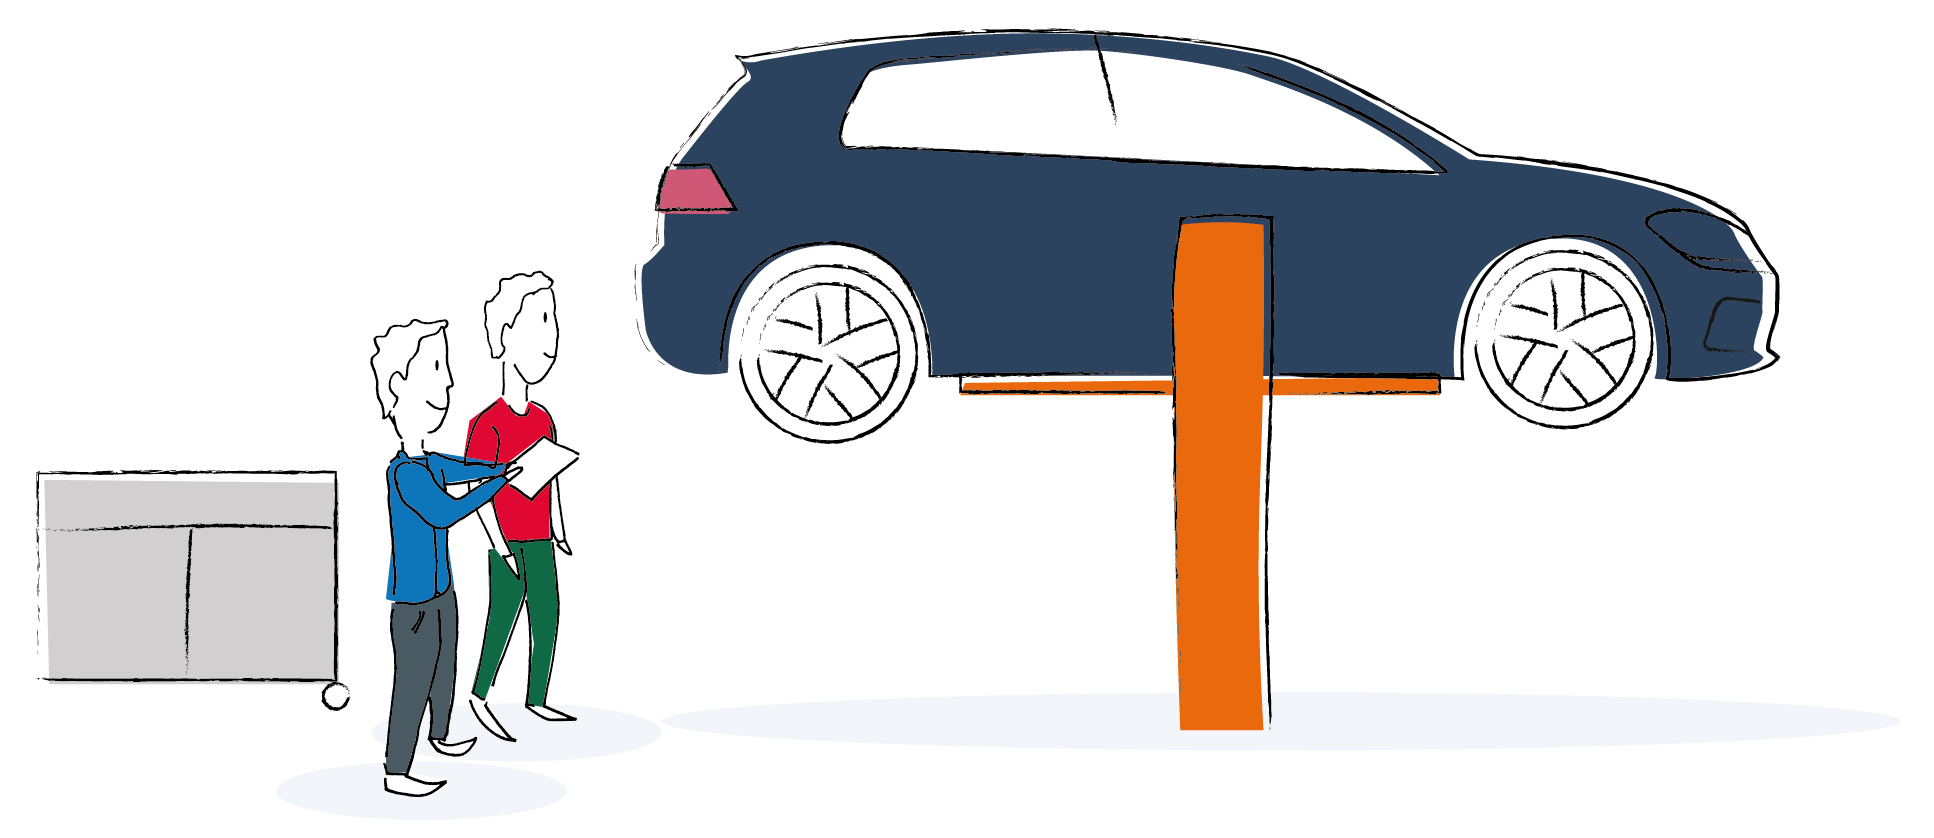 Car on stand-01.png